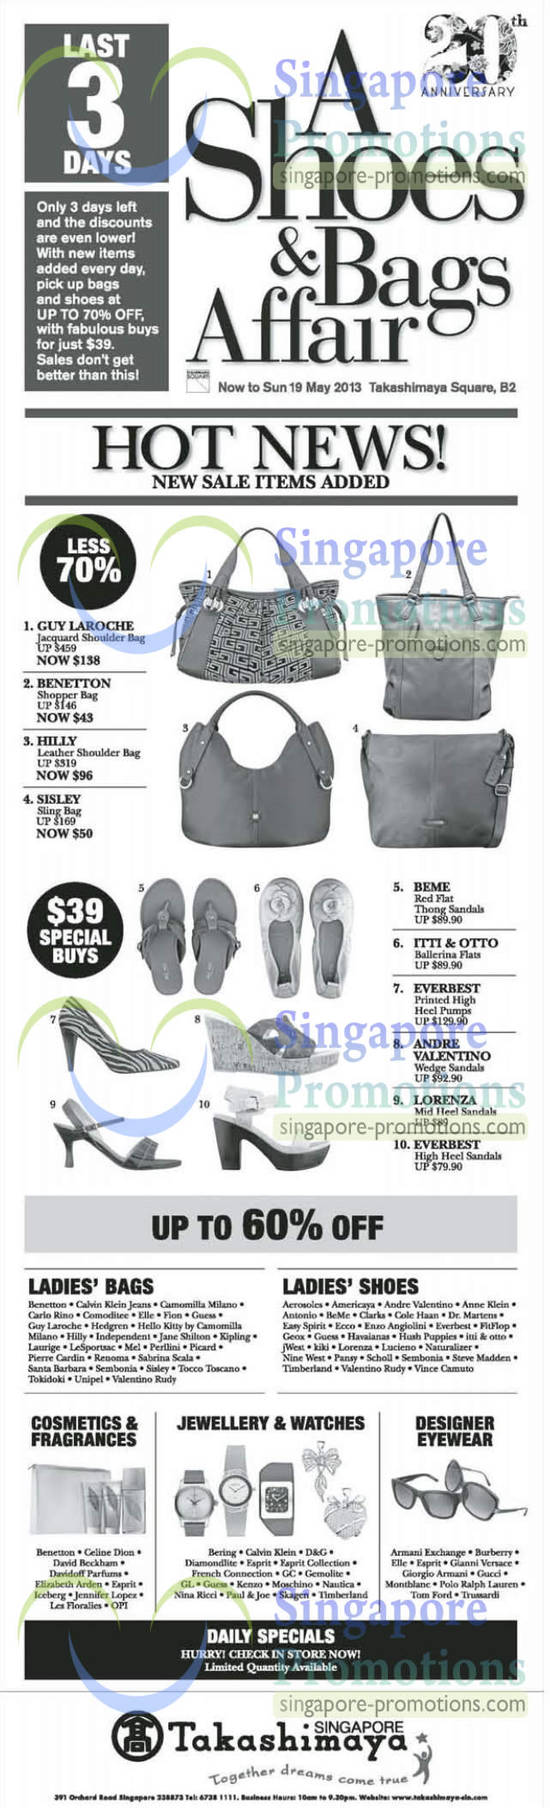 17 May Handbags, Sandals, Guy Laroche, Benetoon, Hilly, Sisley, Beme, Itto & Otto, Everbest, Lorenza